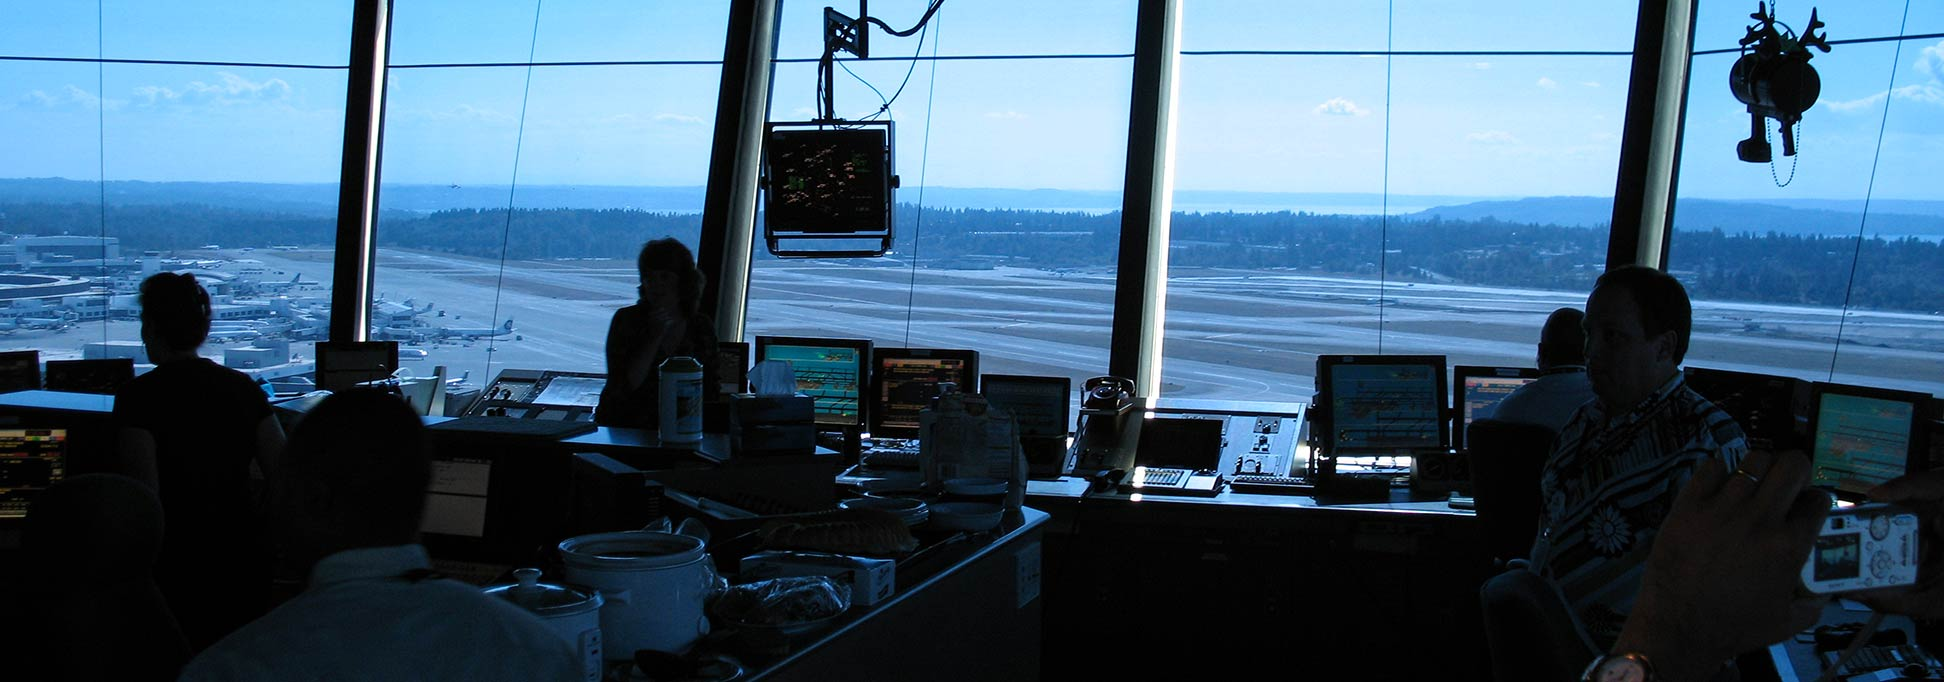 Interior of the control tower of Seattle-Tacoma (SeaTac) International Airport